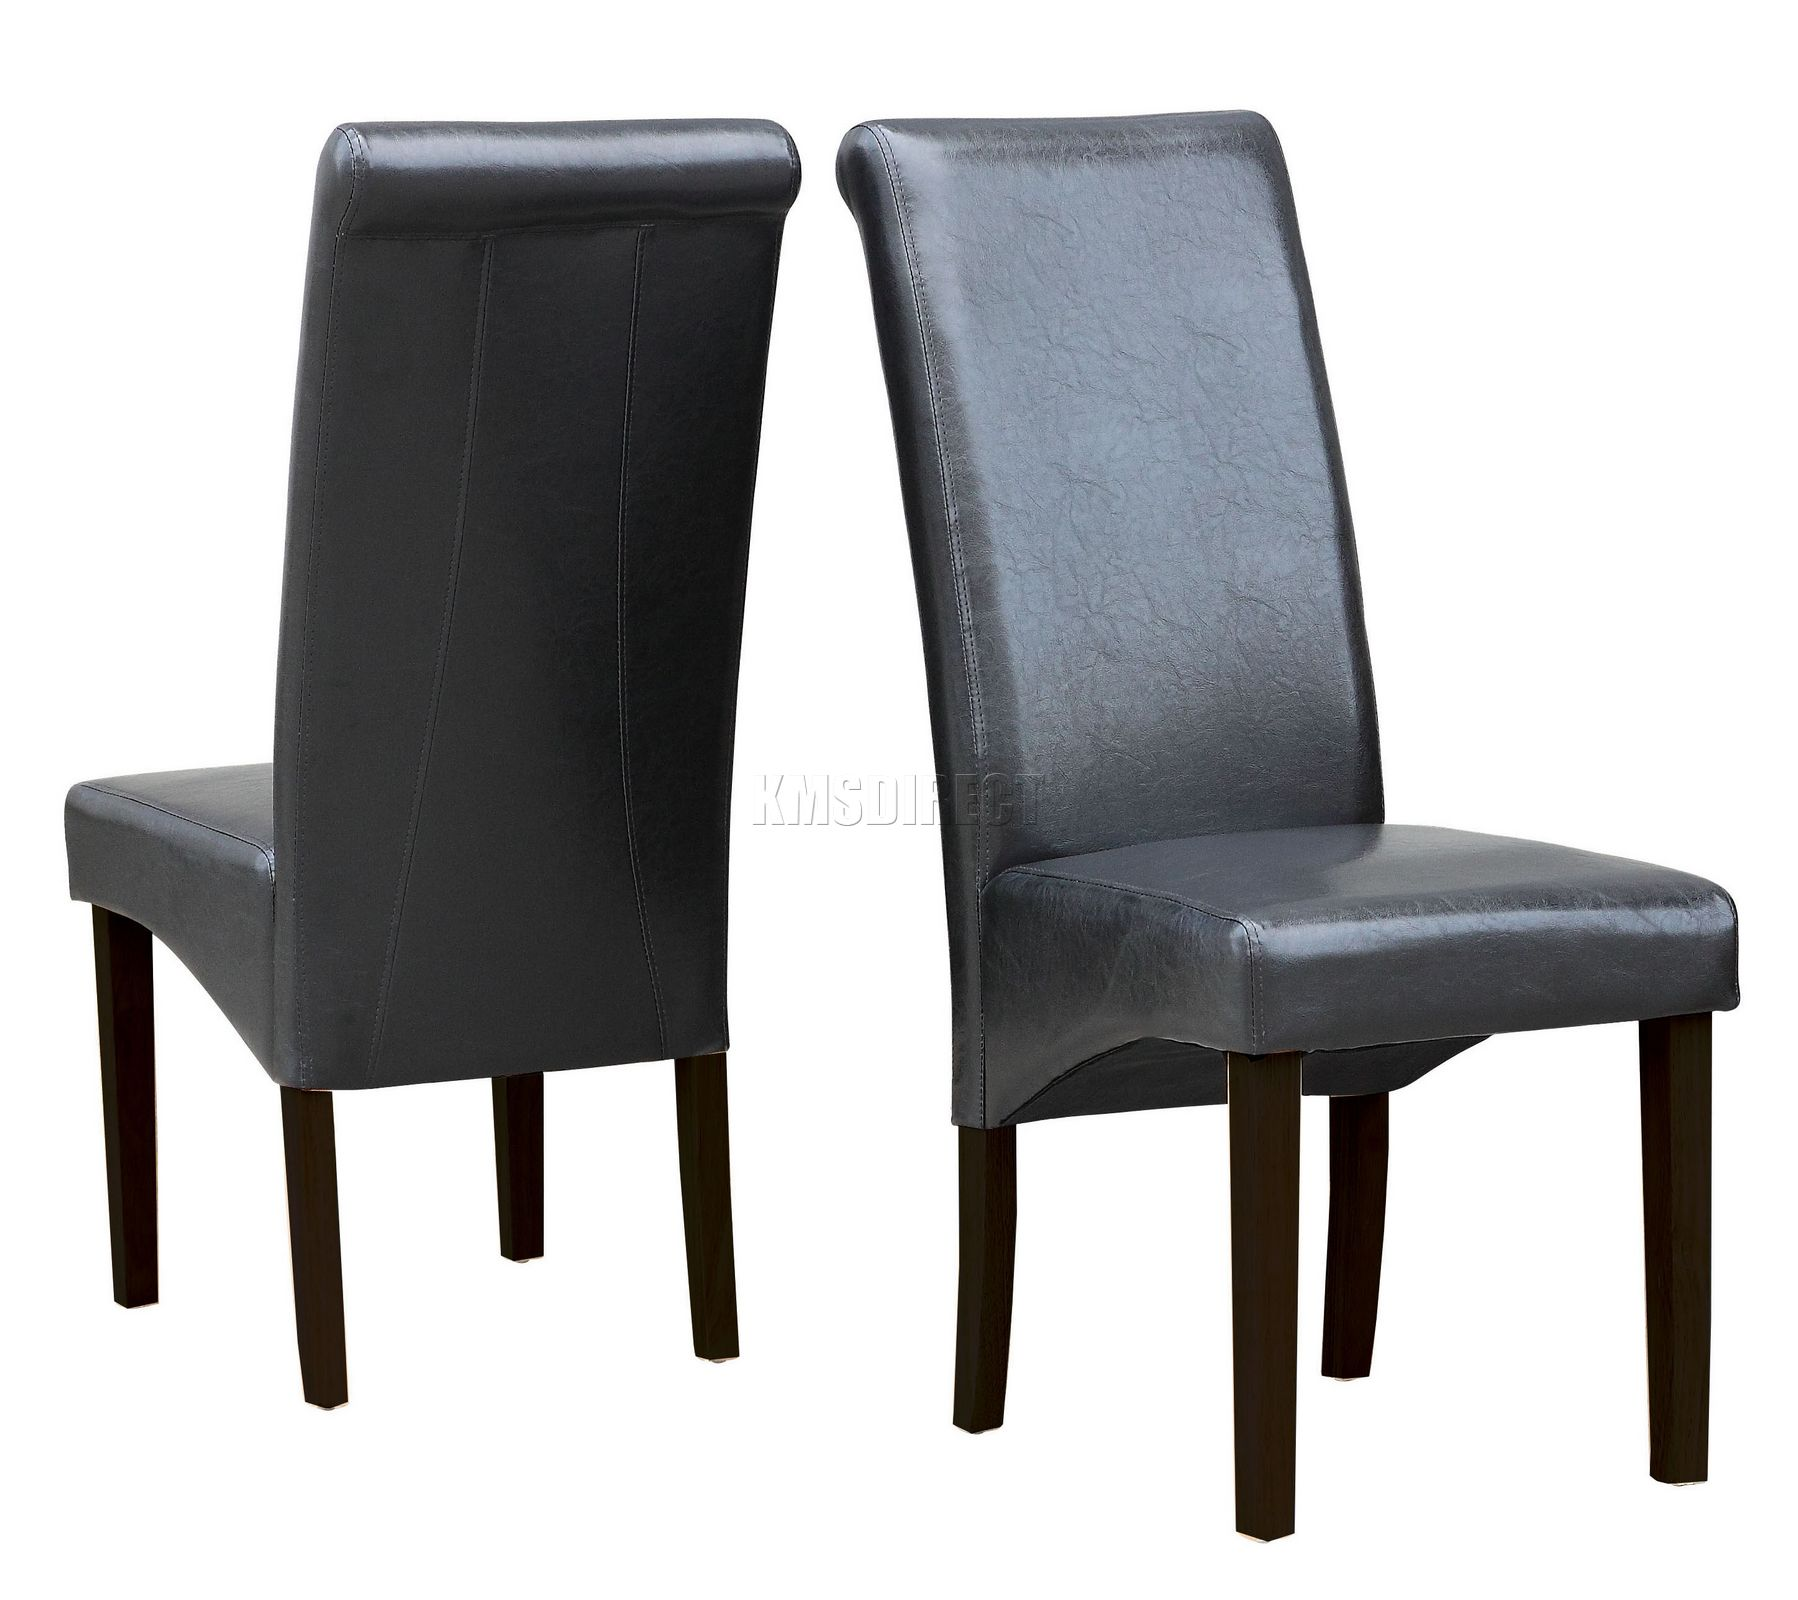 premium dining chair black faux leather roll top scroll high back wood